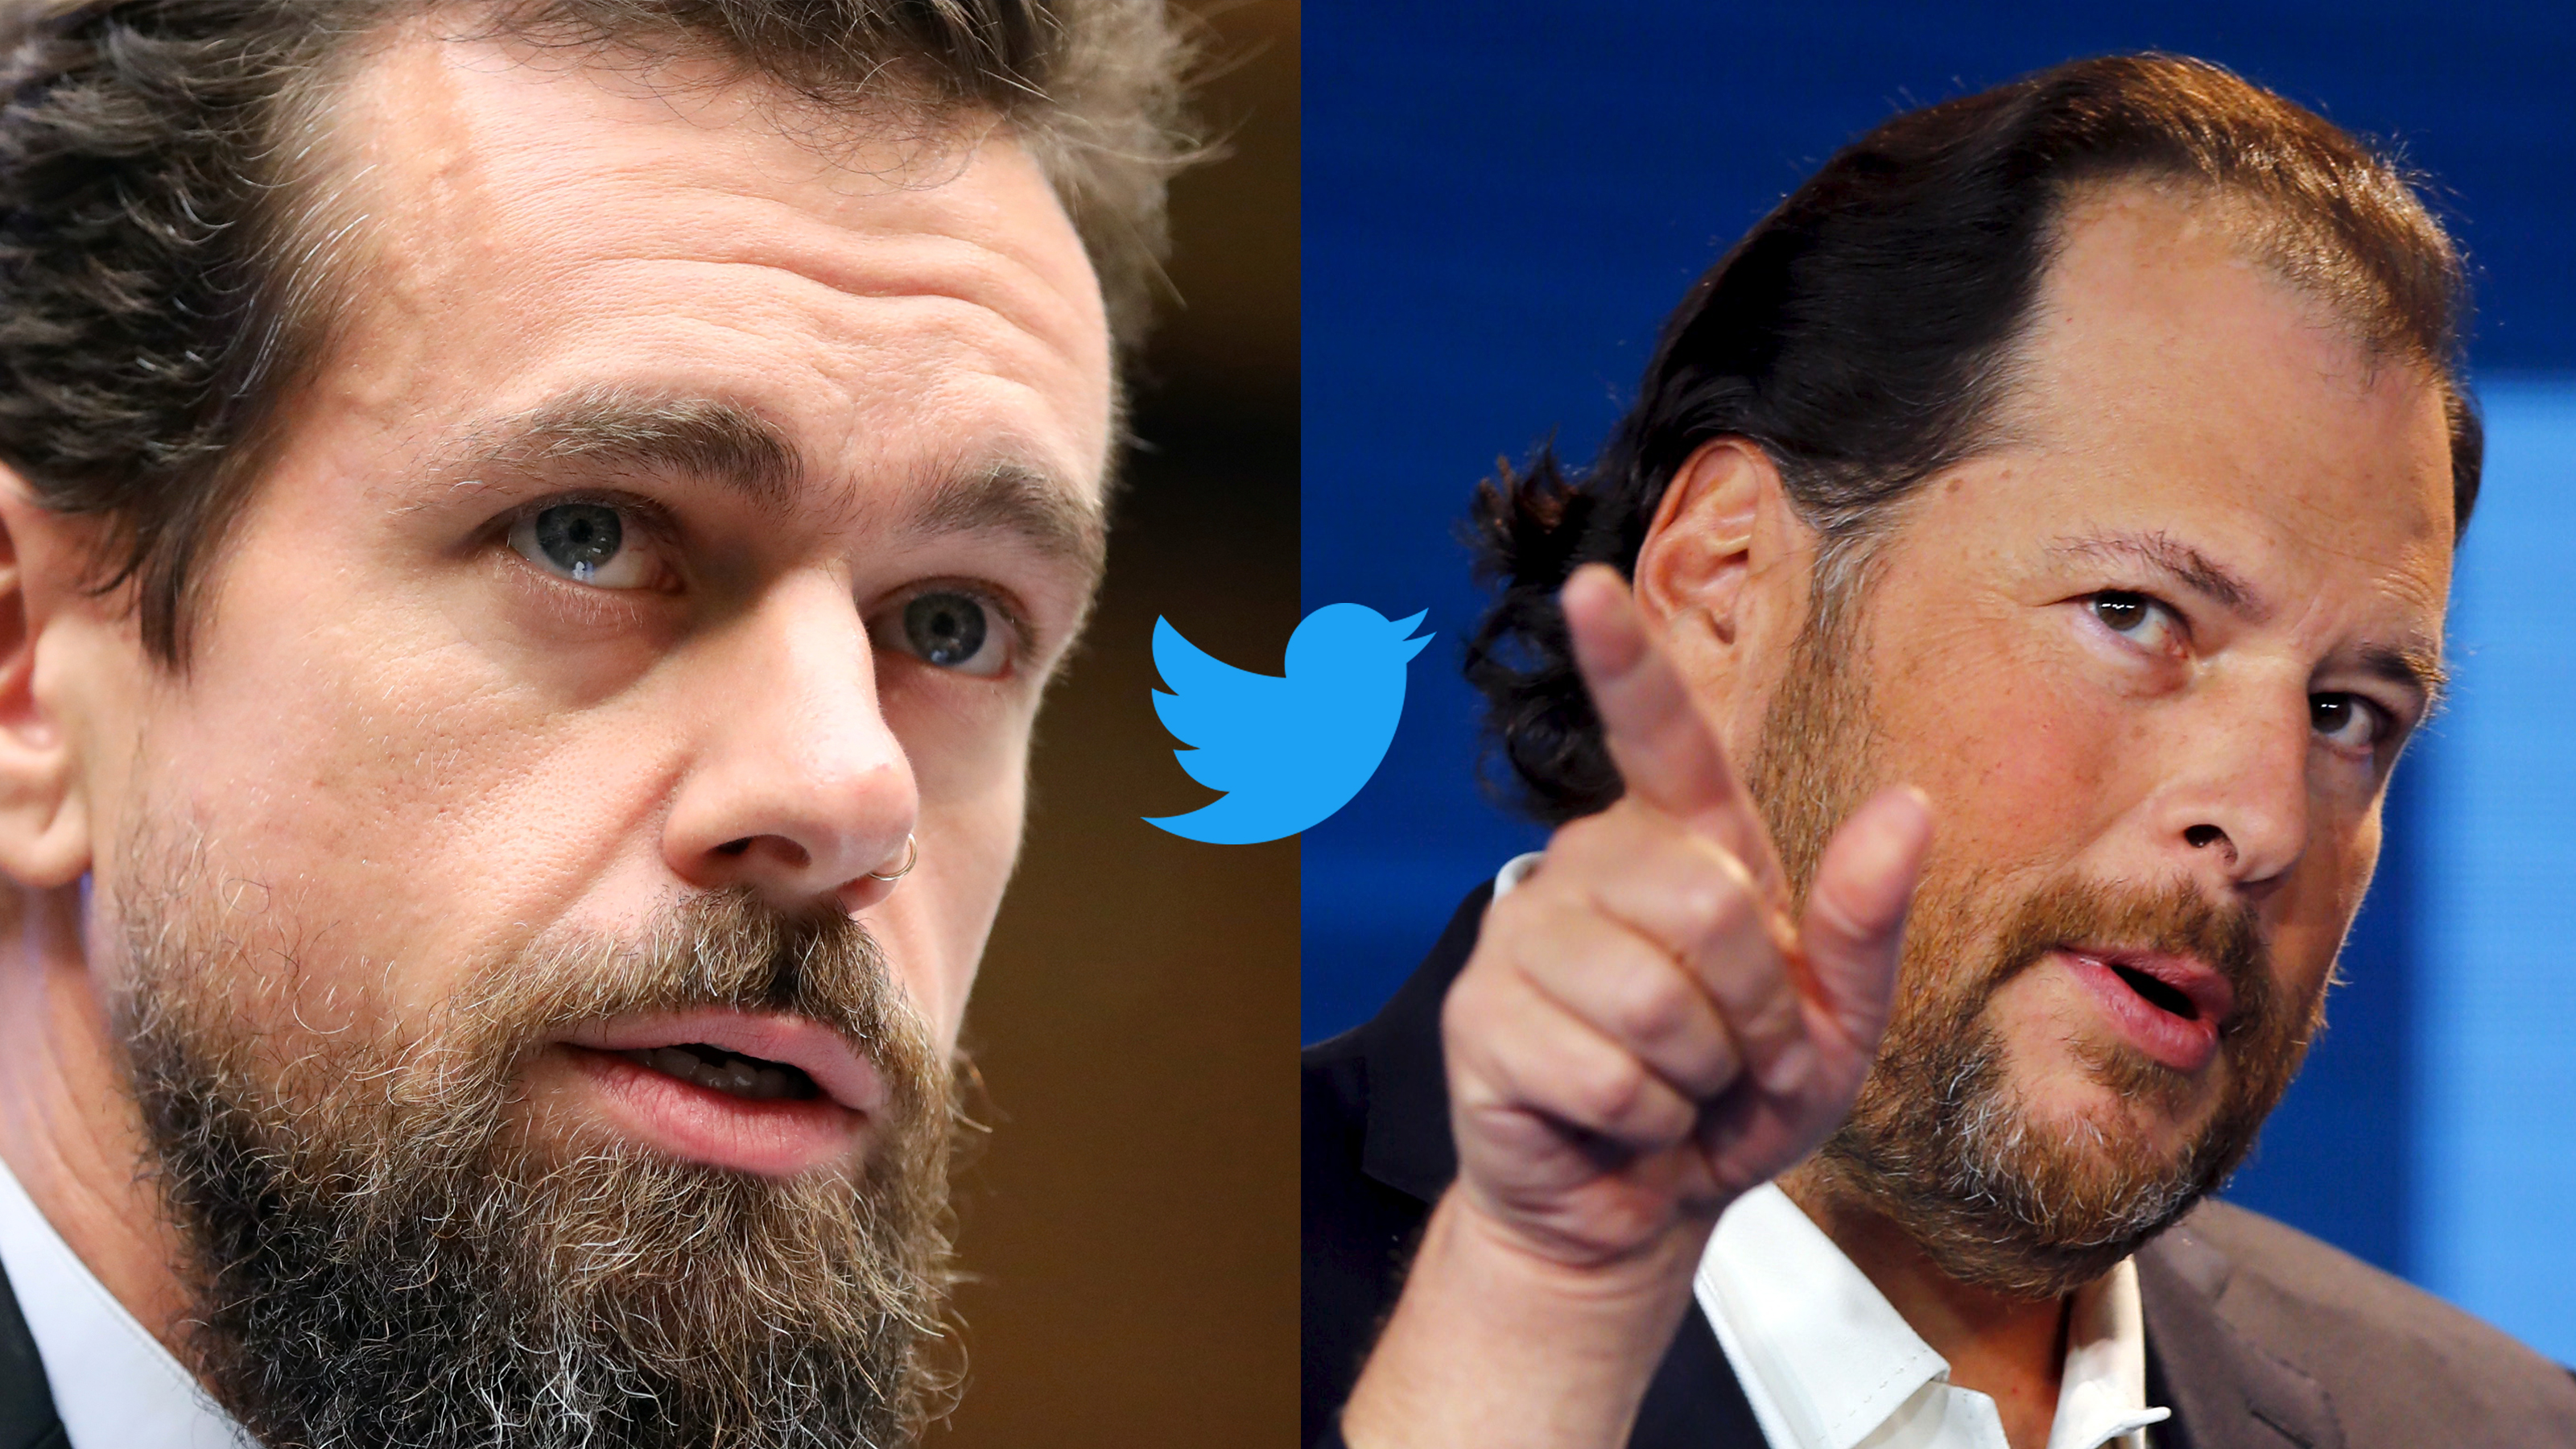 Jack Dorsey and Marc Benioff